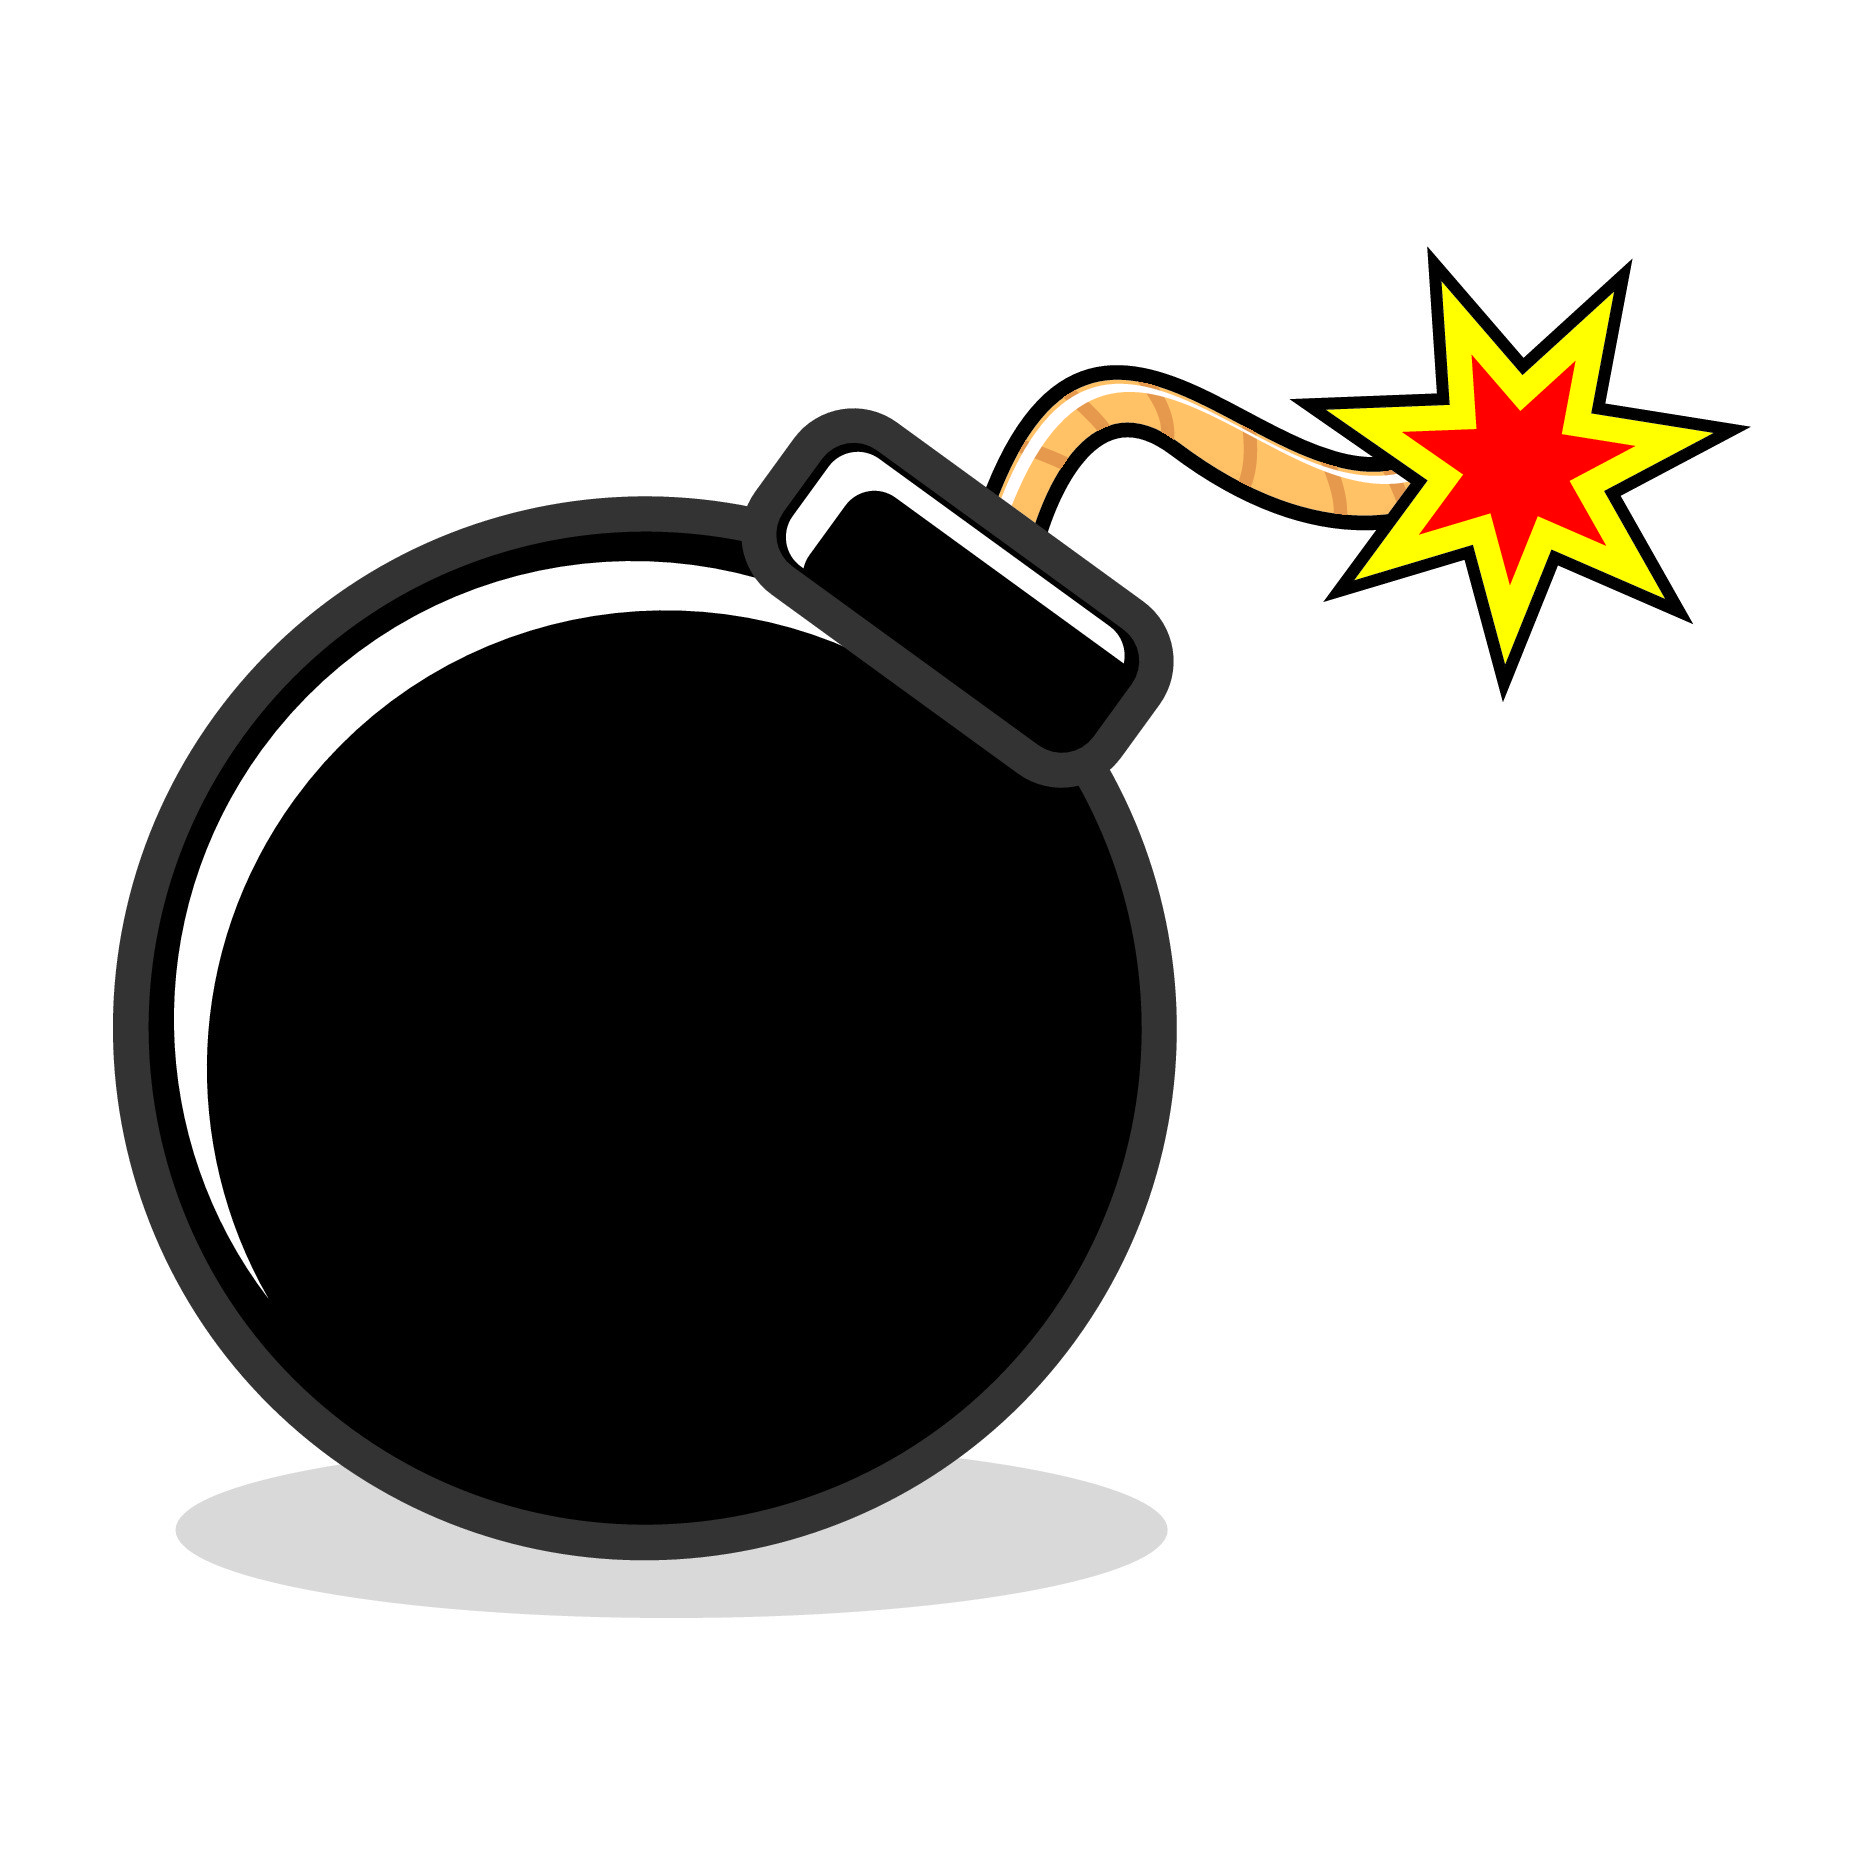 Bomb clipart, Bomb Transparent FREE for download on.